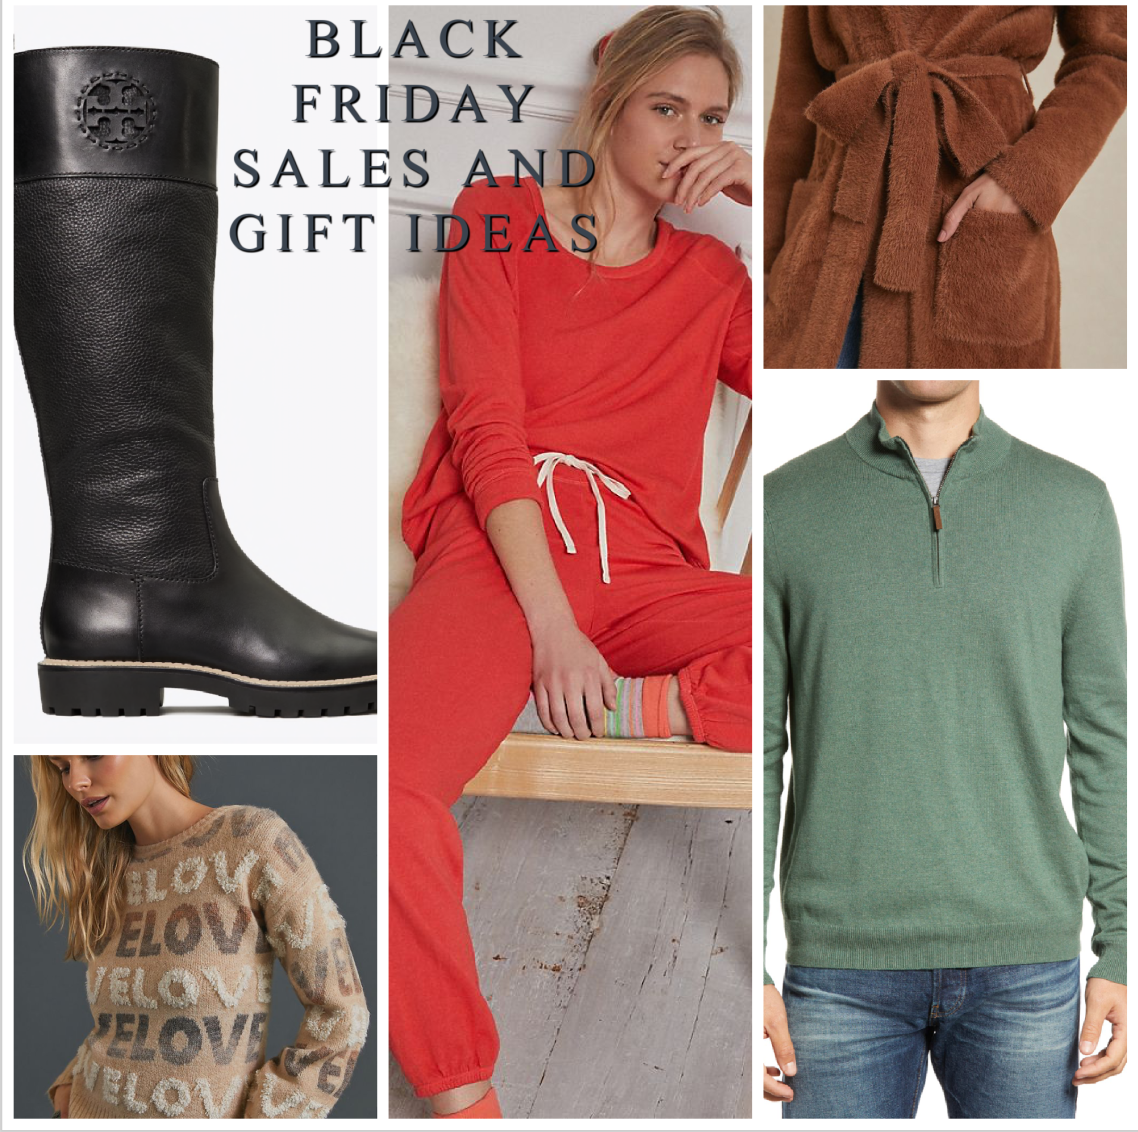 My Black Friday Picks and Holiday Gift Ideas